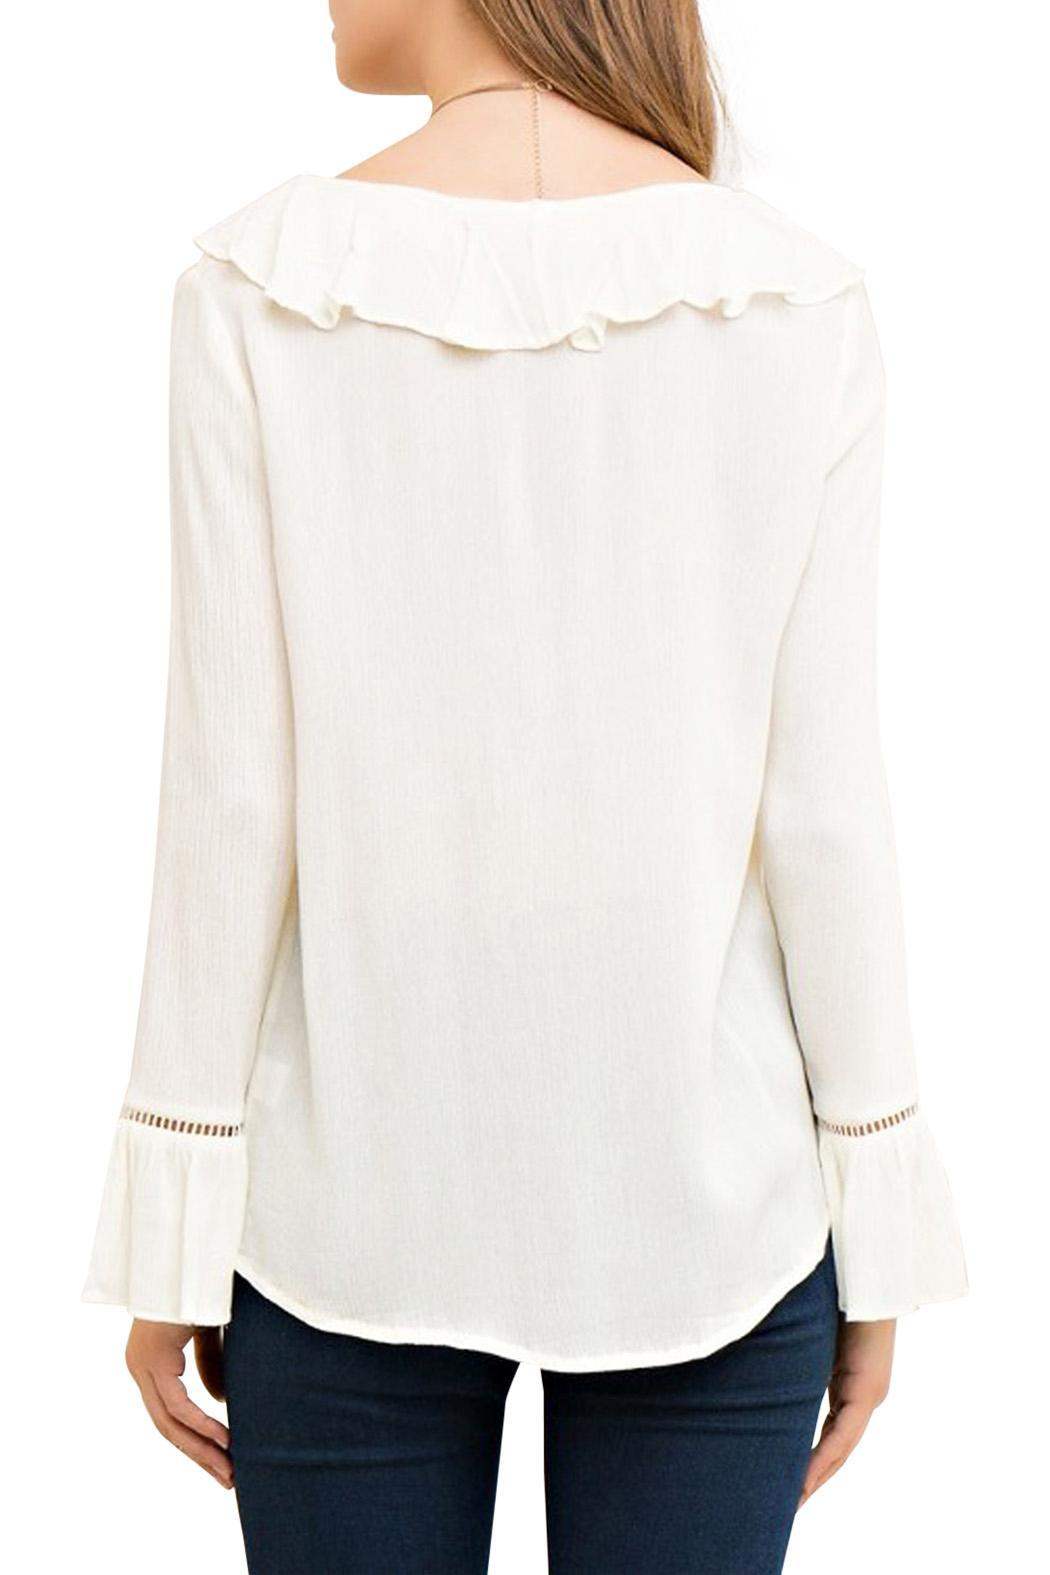 Entro Lace Up Blouse - Front Full Image